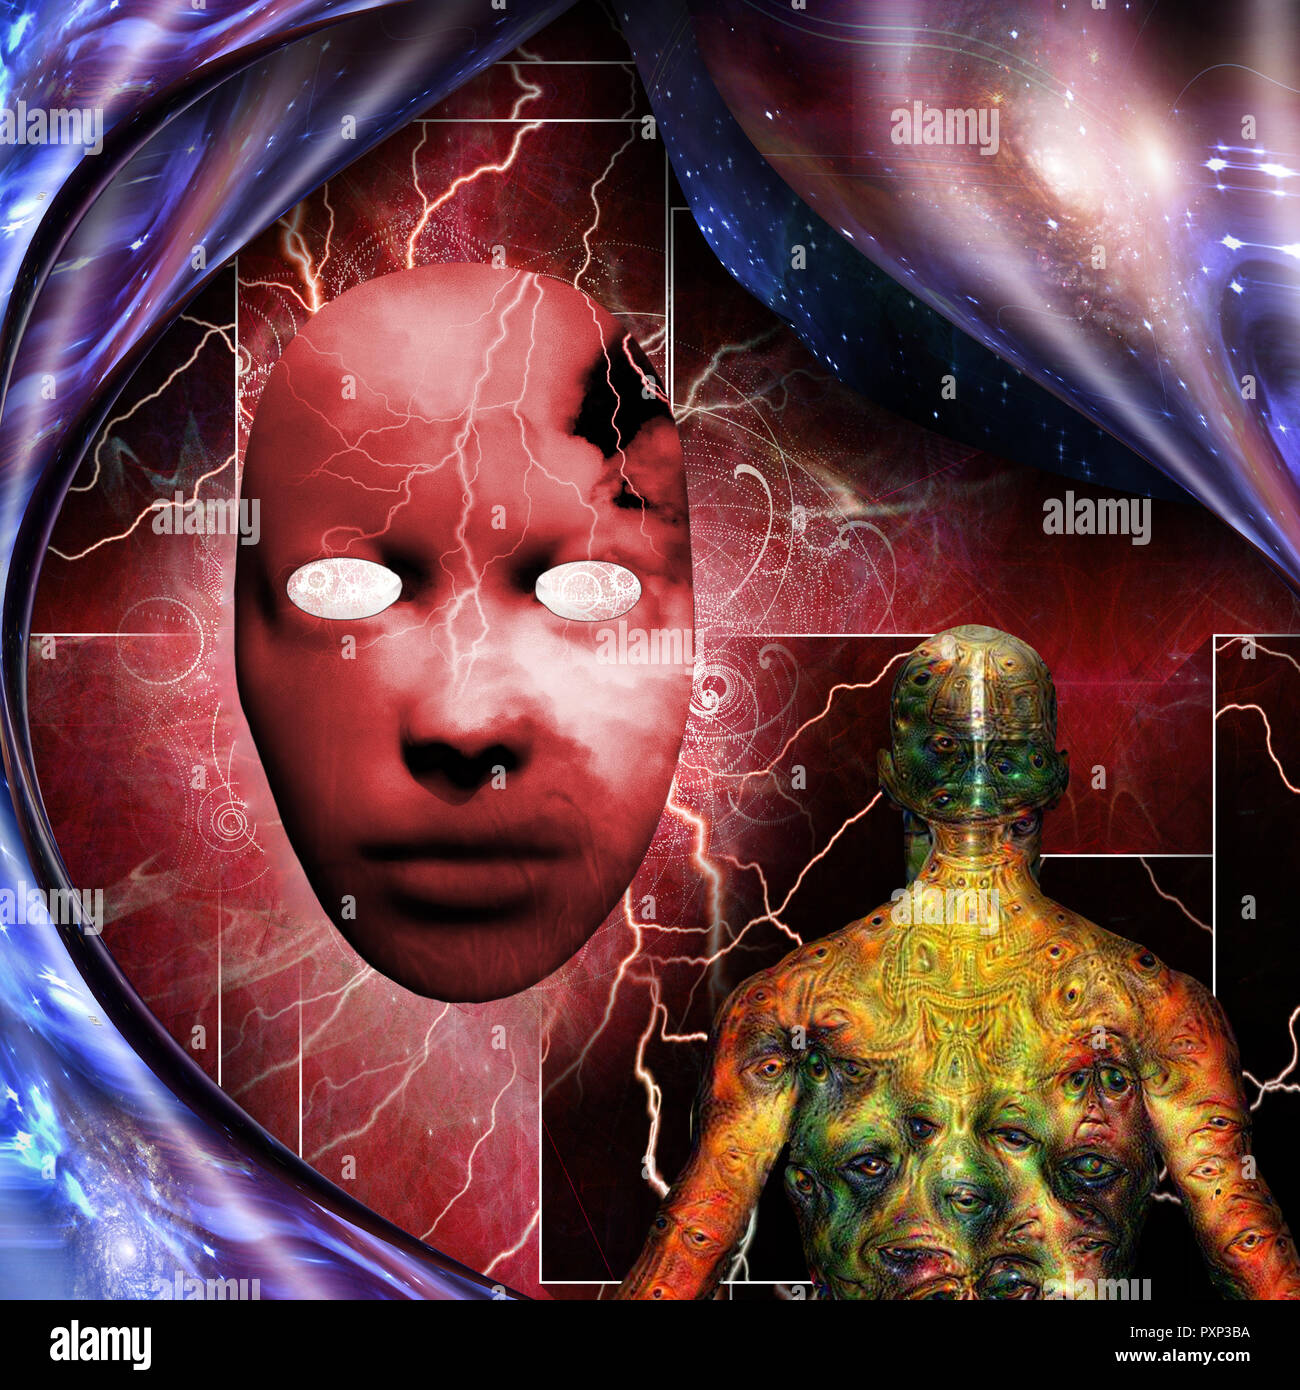 Surrealism. Mystic mask with lightnings. Man with weird demonic eyes on skin. Warped space. - Stock Image